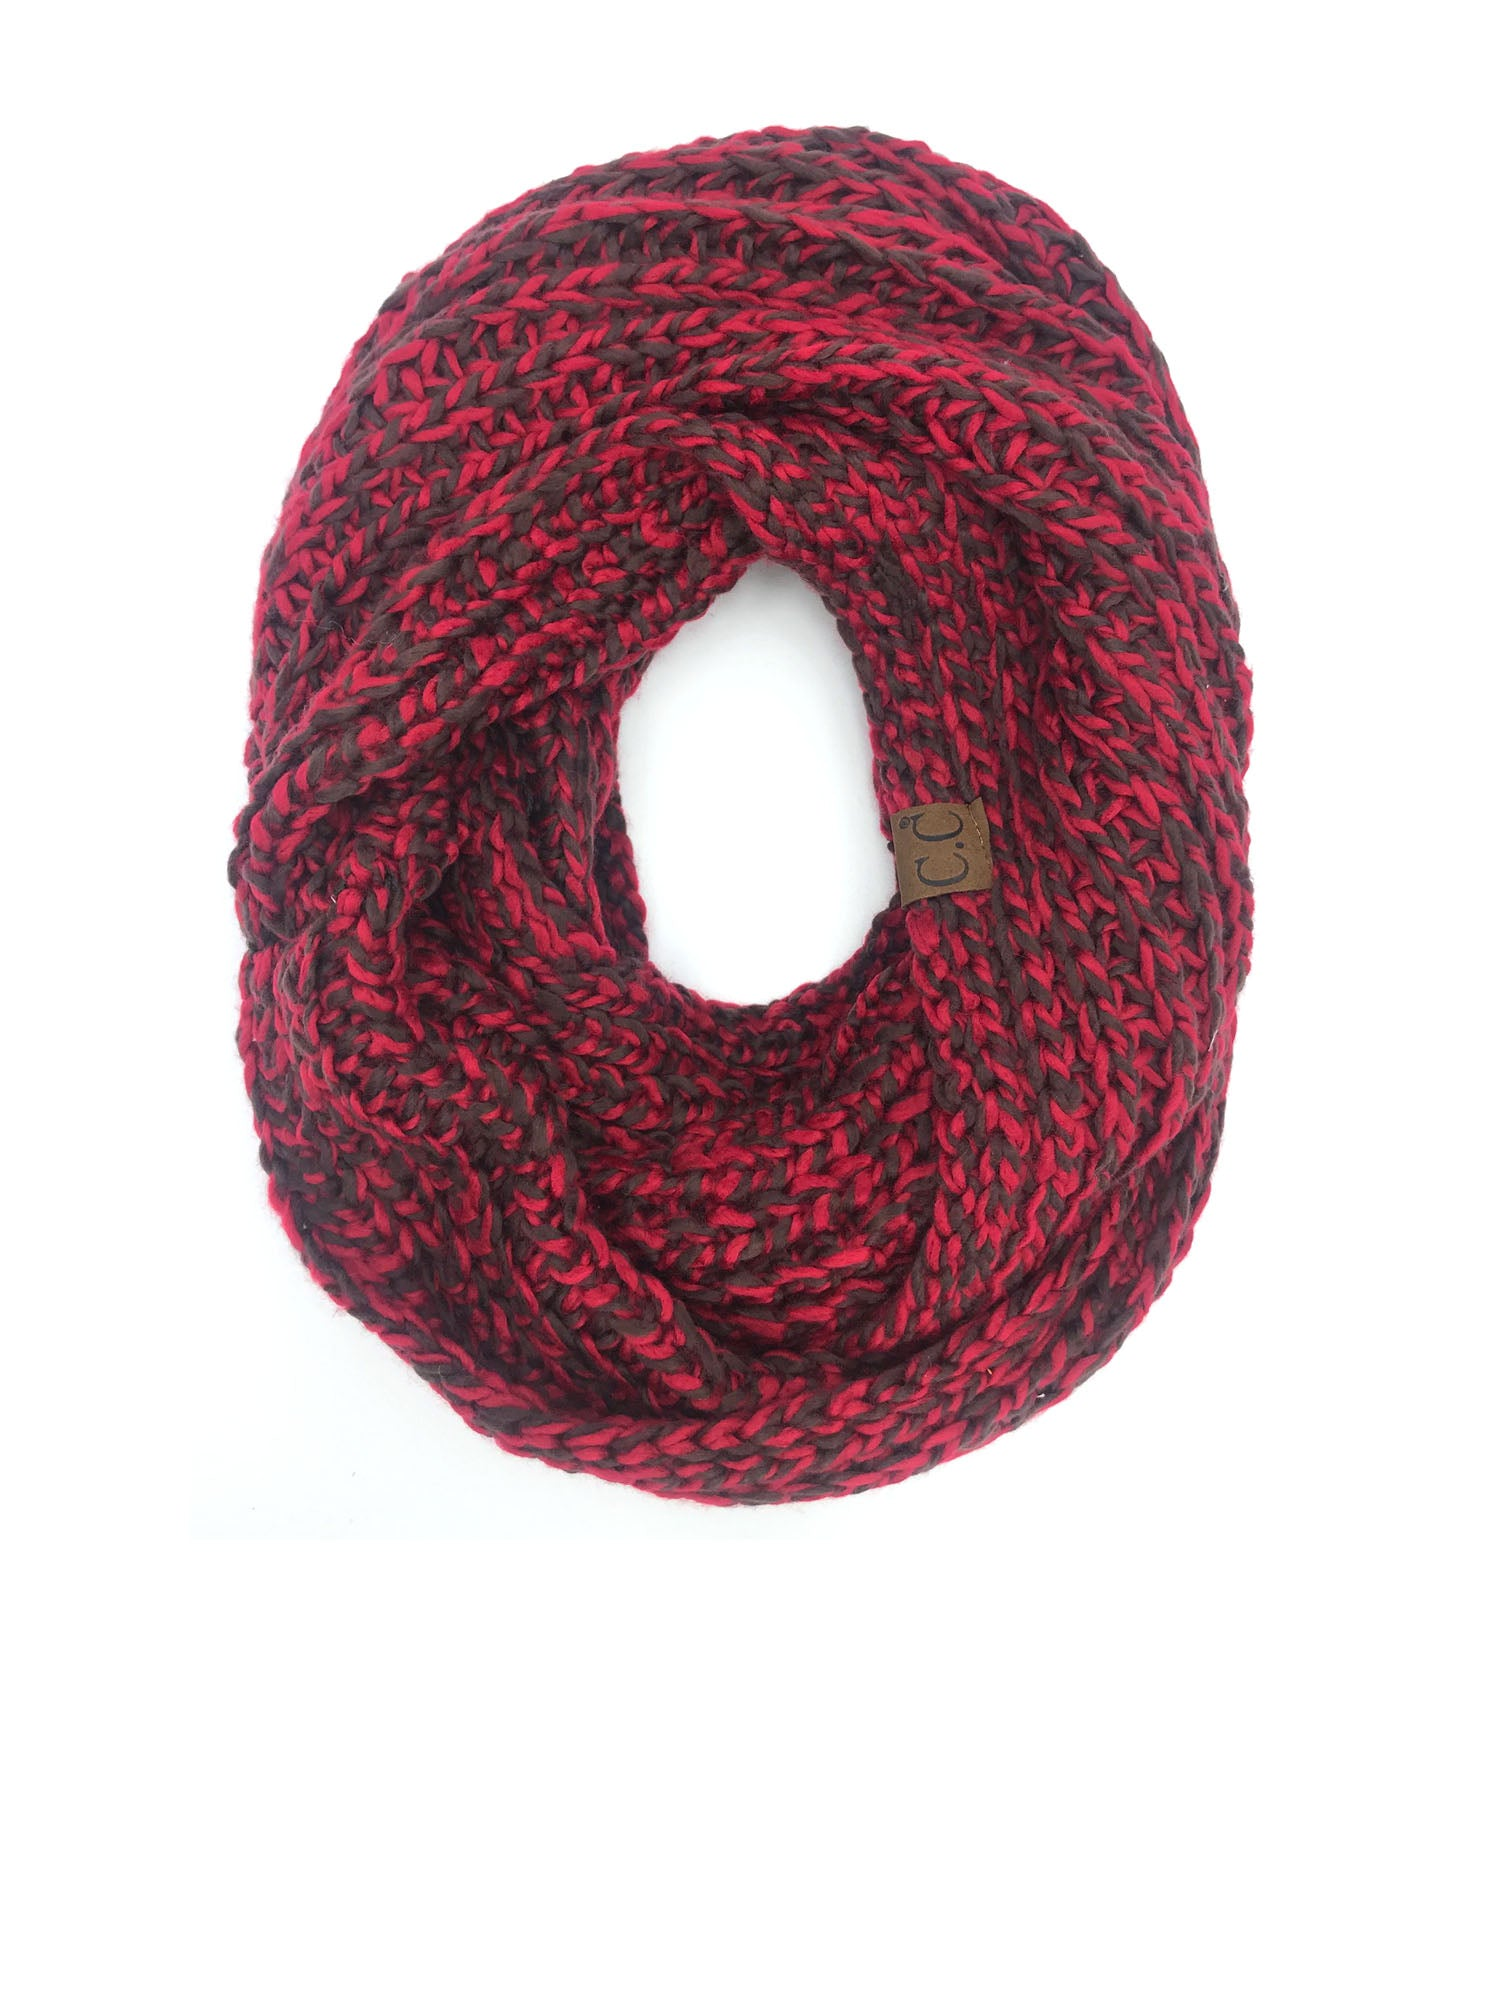 SF-123 BURGUNDY COFFEE CROCHET SCARF